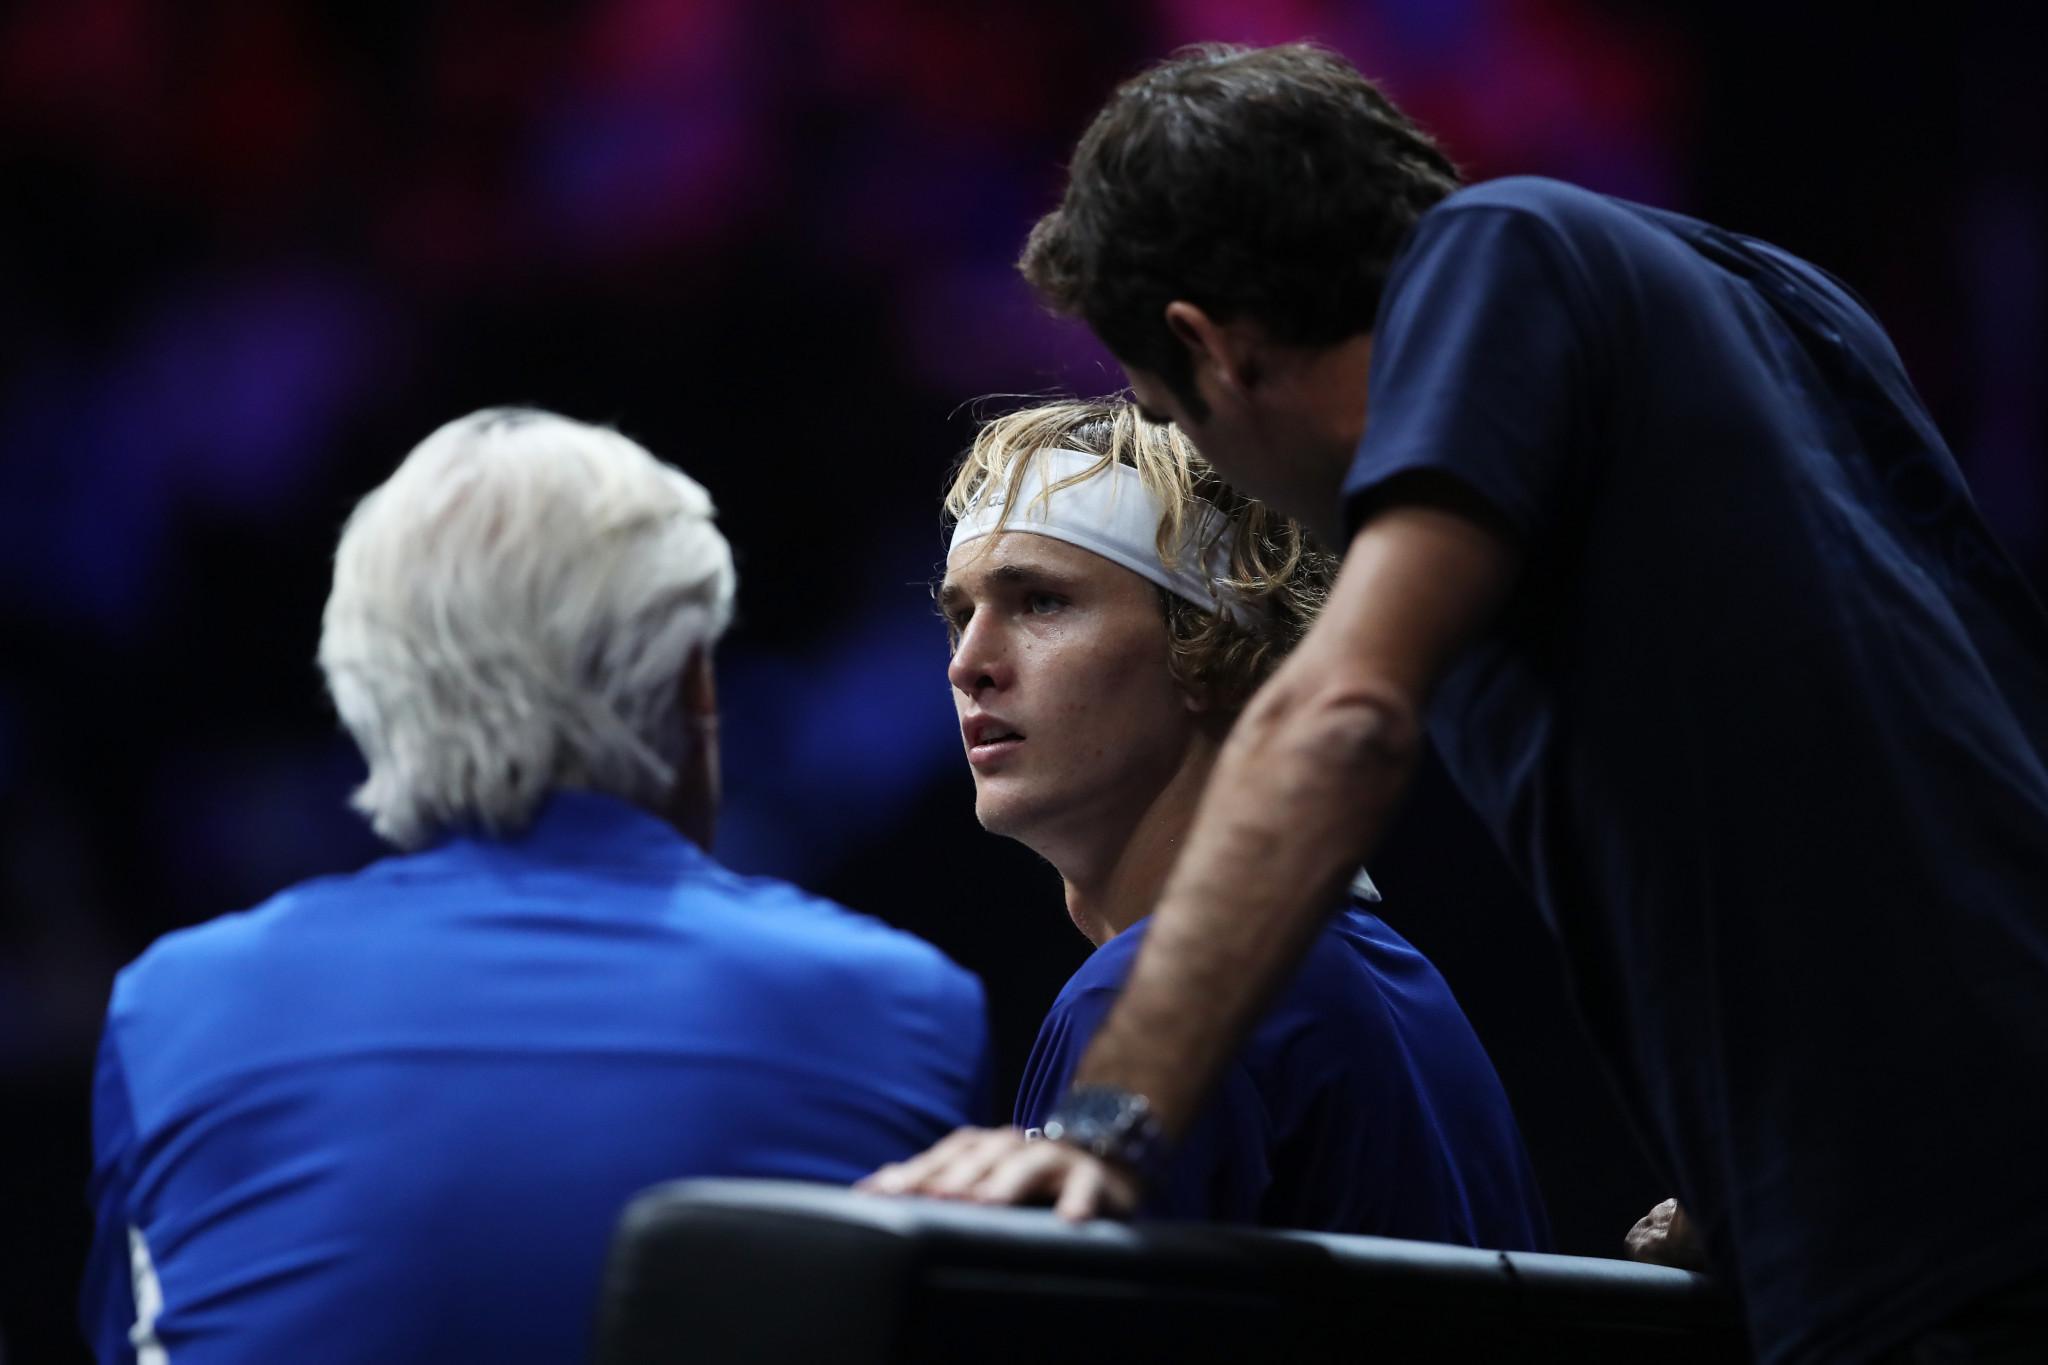 Borg's Europe leads after first day of inaugural Laver Cup